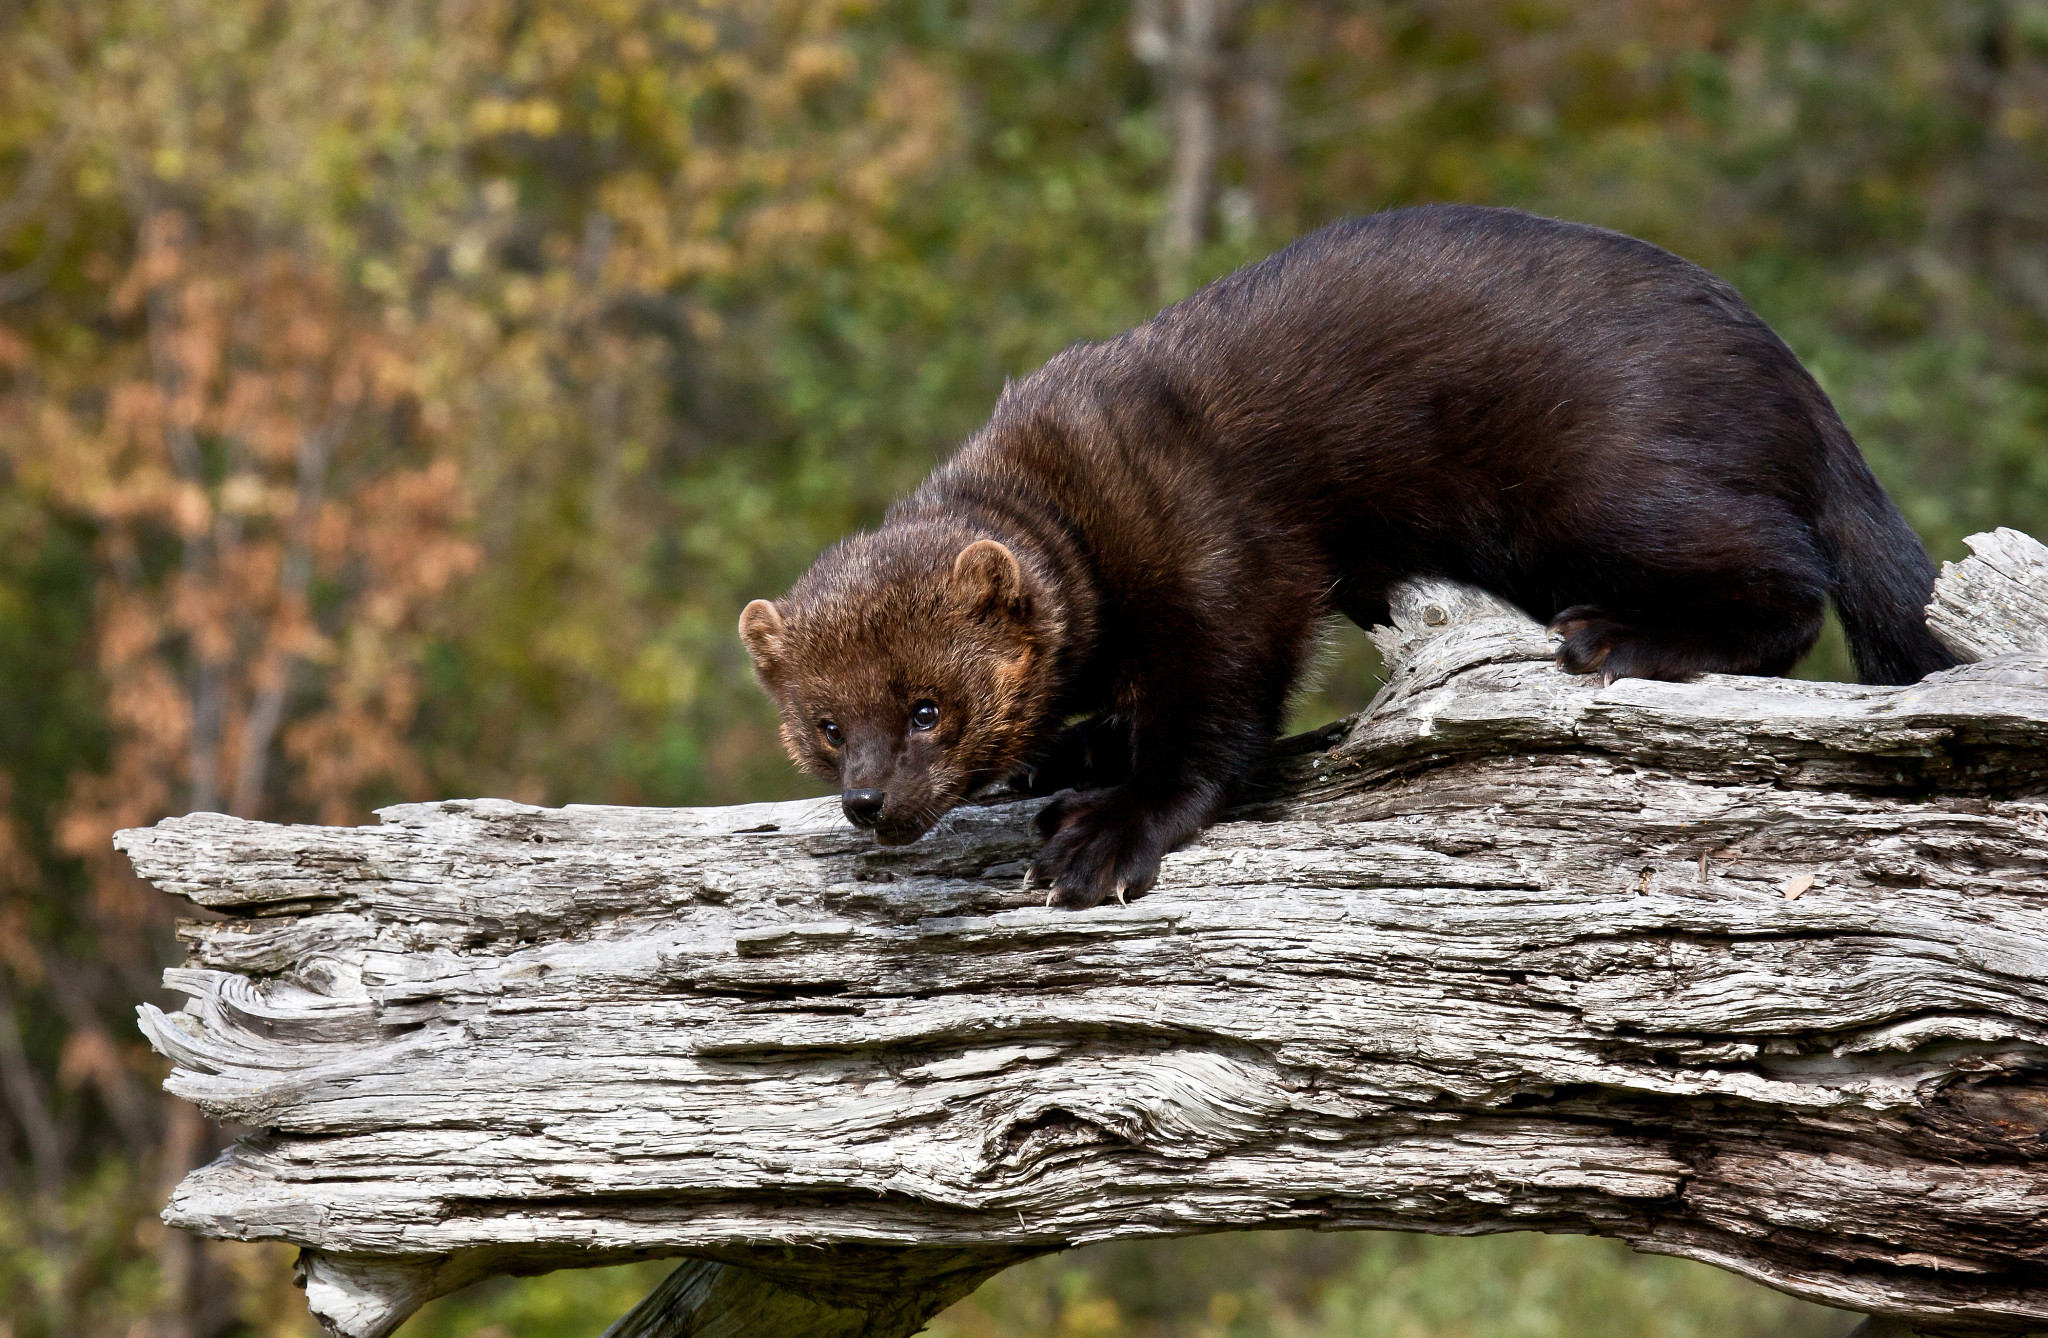 fisher (mammal) standing on a log